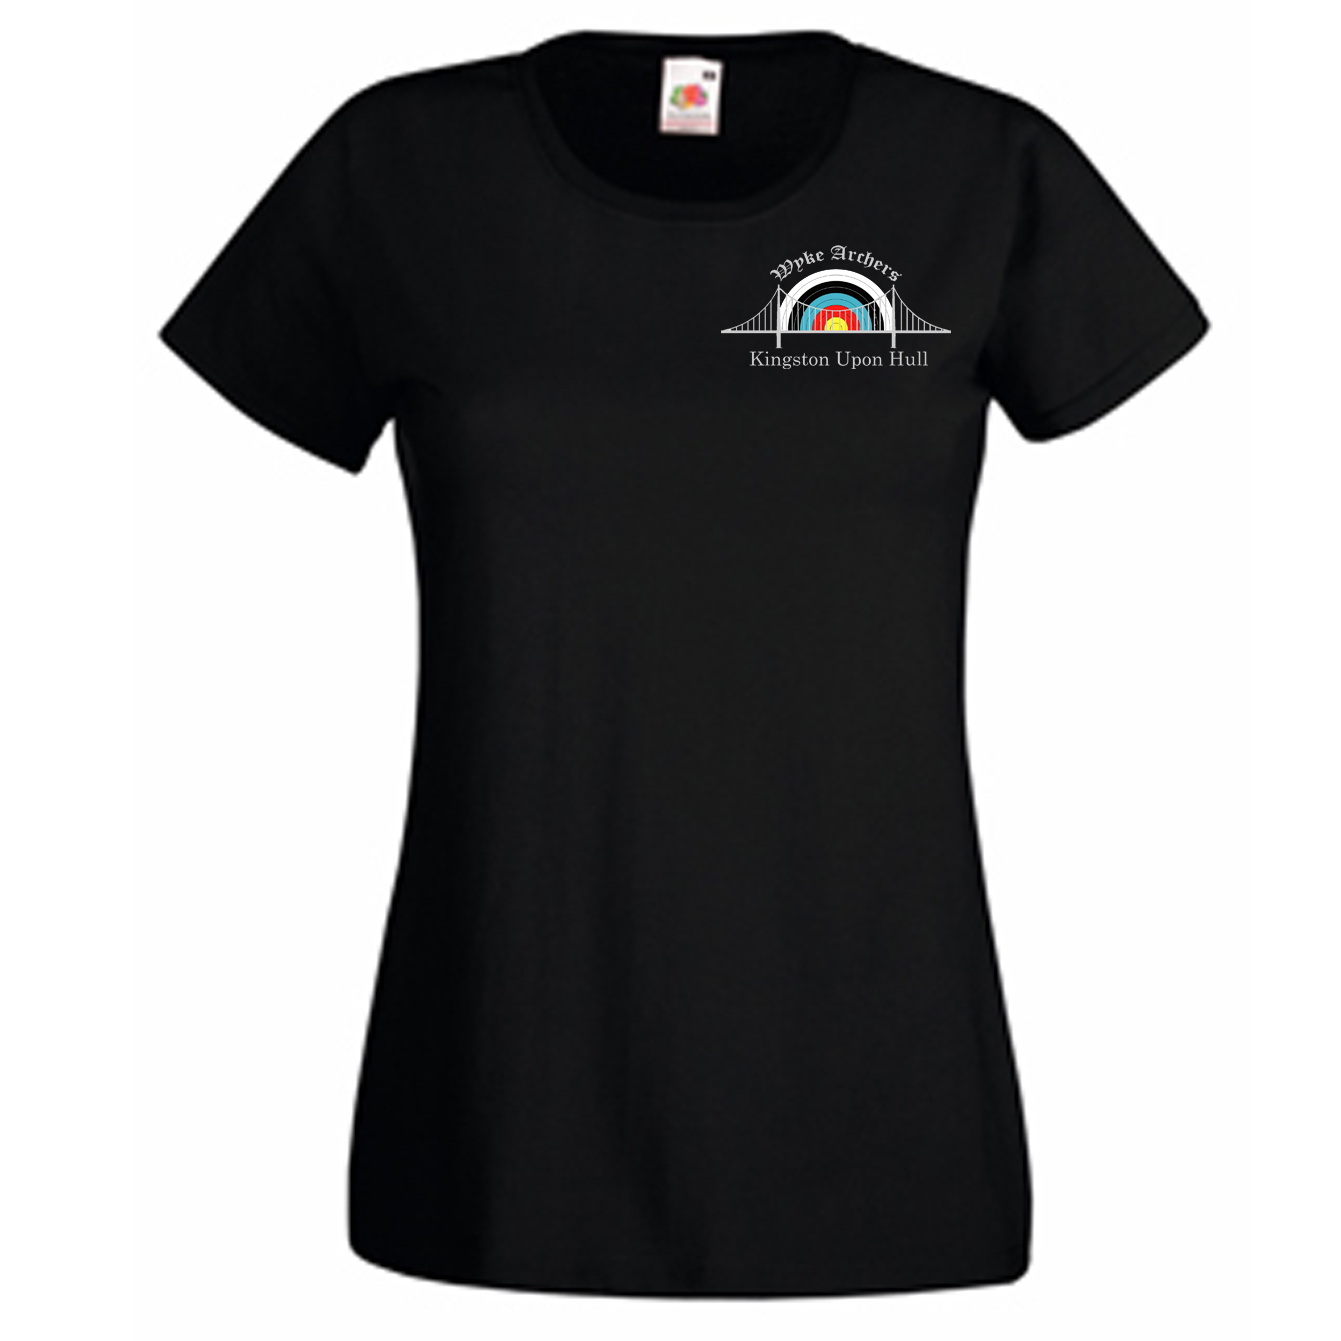 61372: Ladies Standard T-Shirt (Fruit Of The Loom)